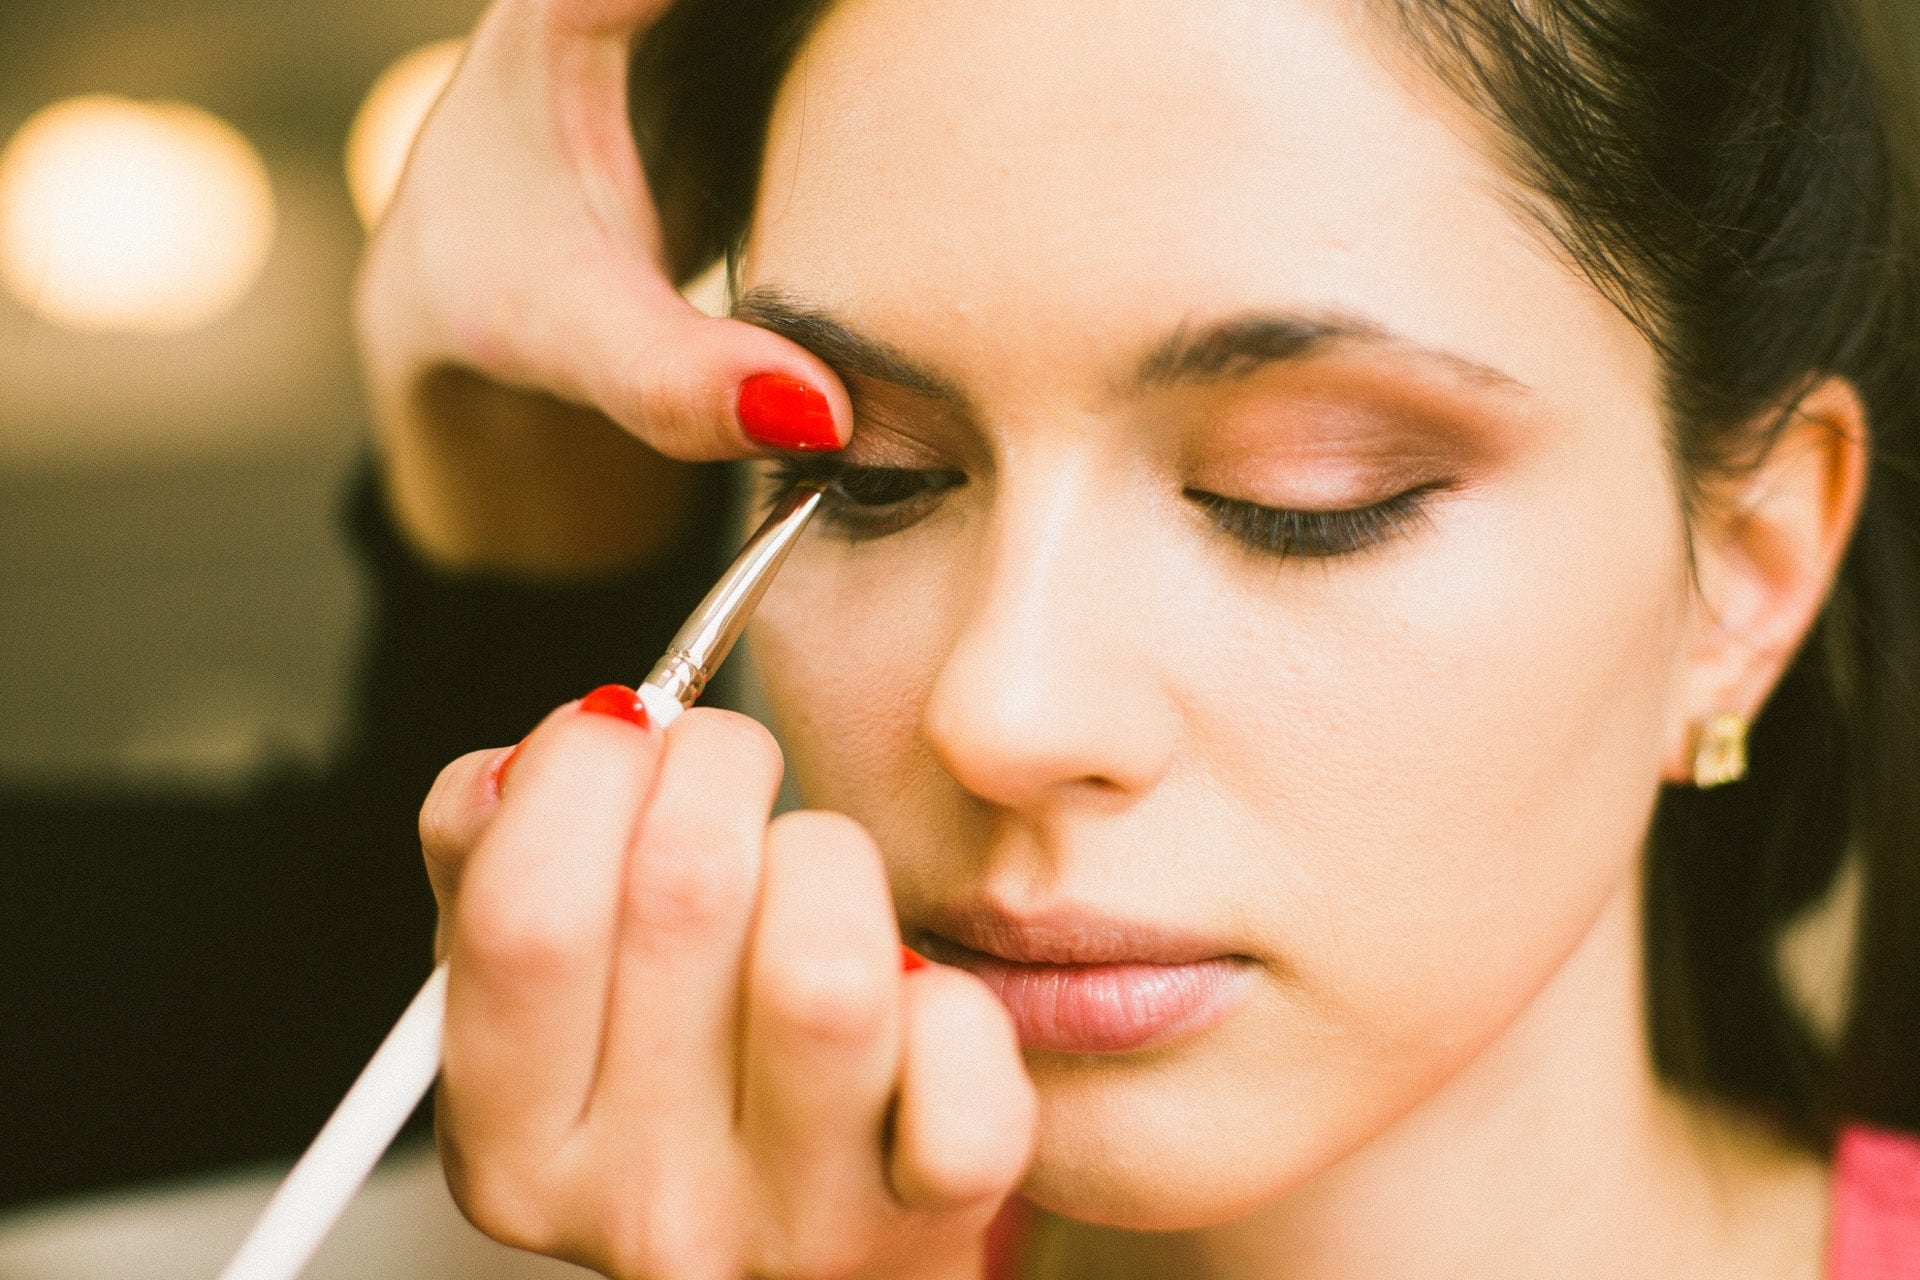 Can You Use A Lip Liner As Eyeliner?